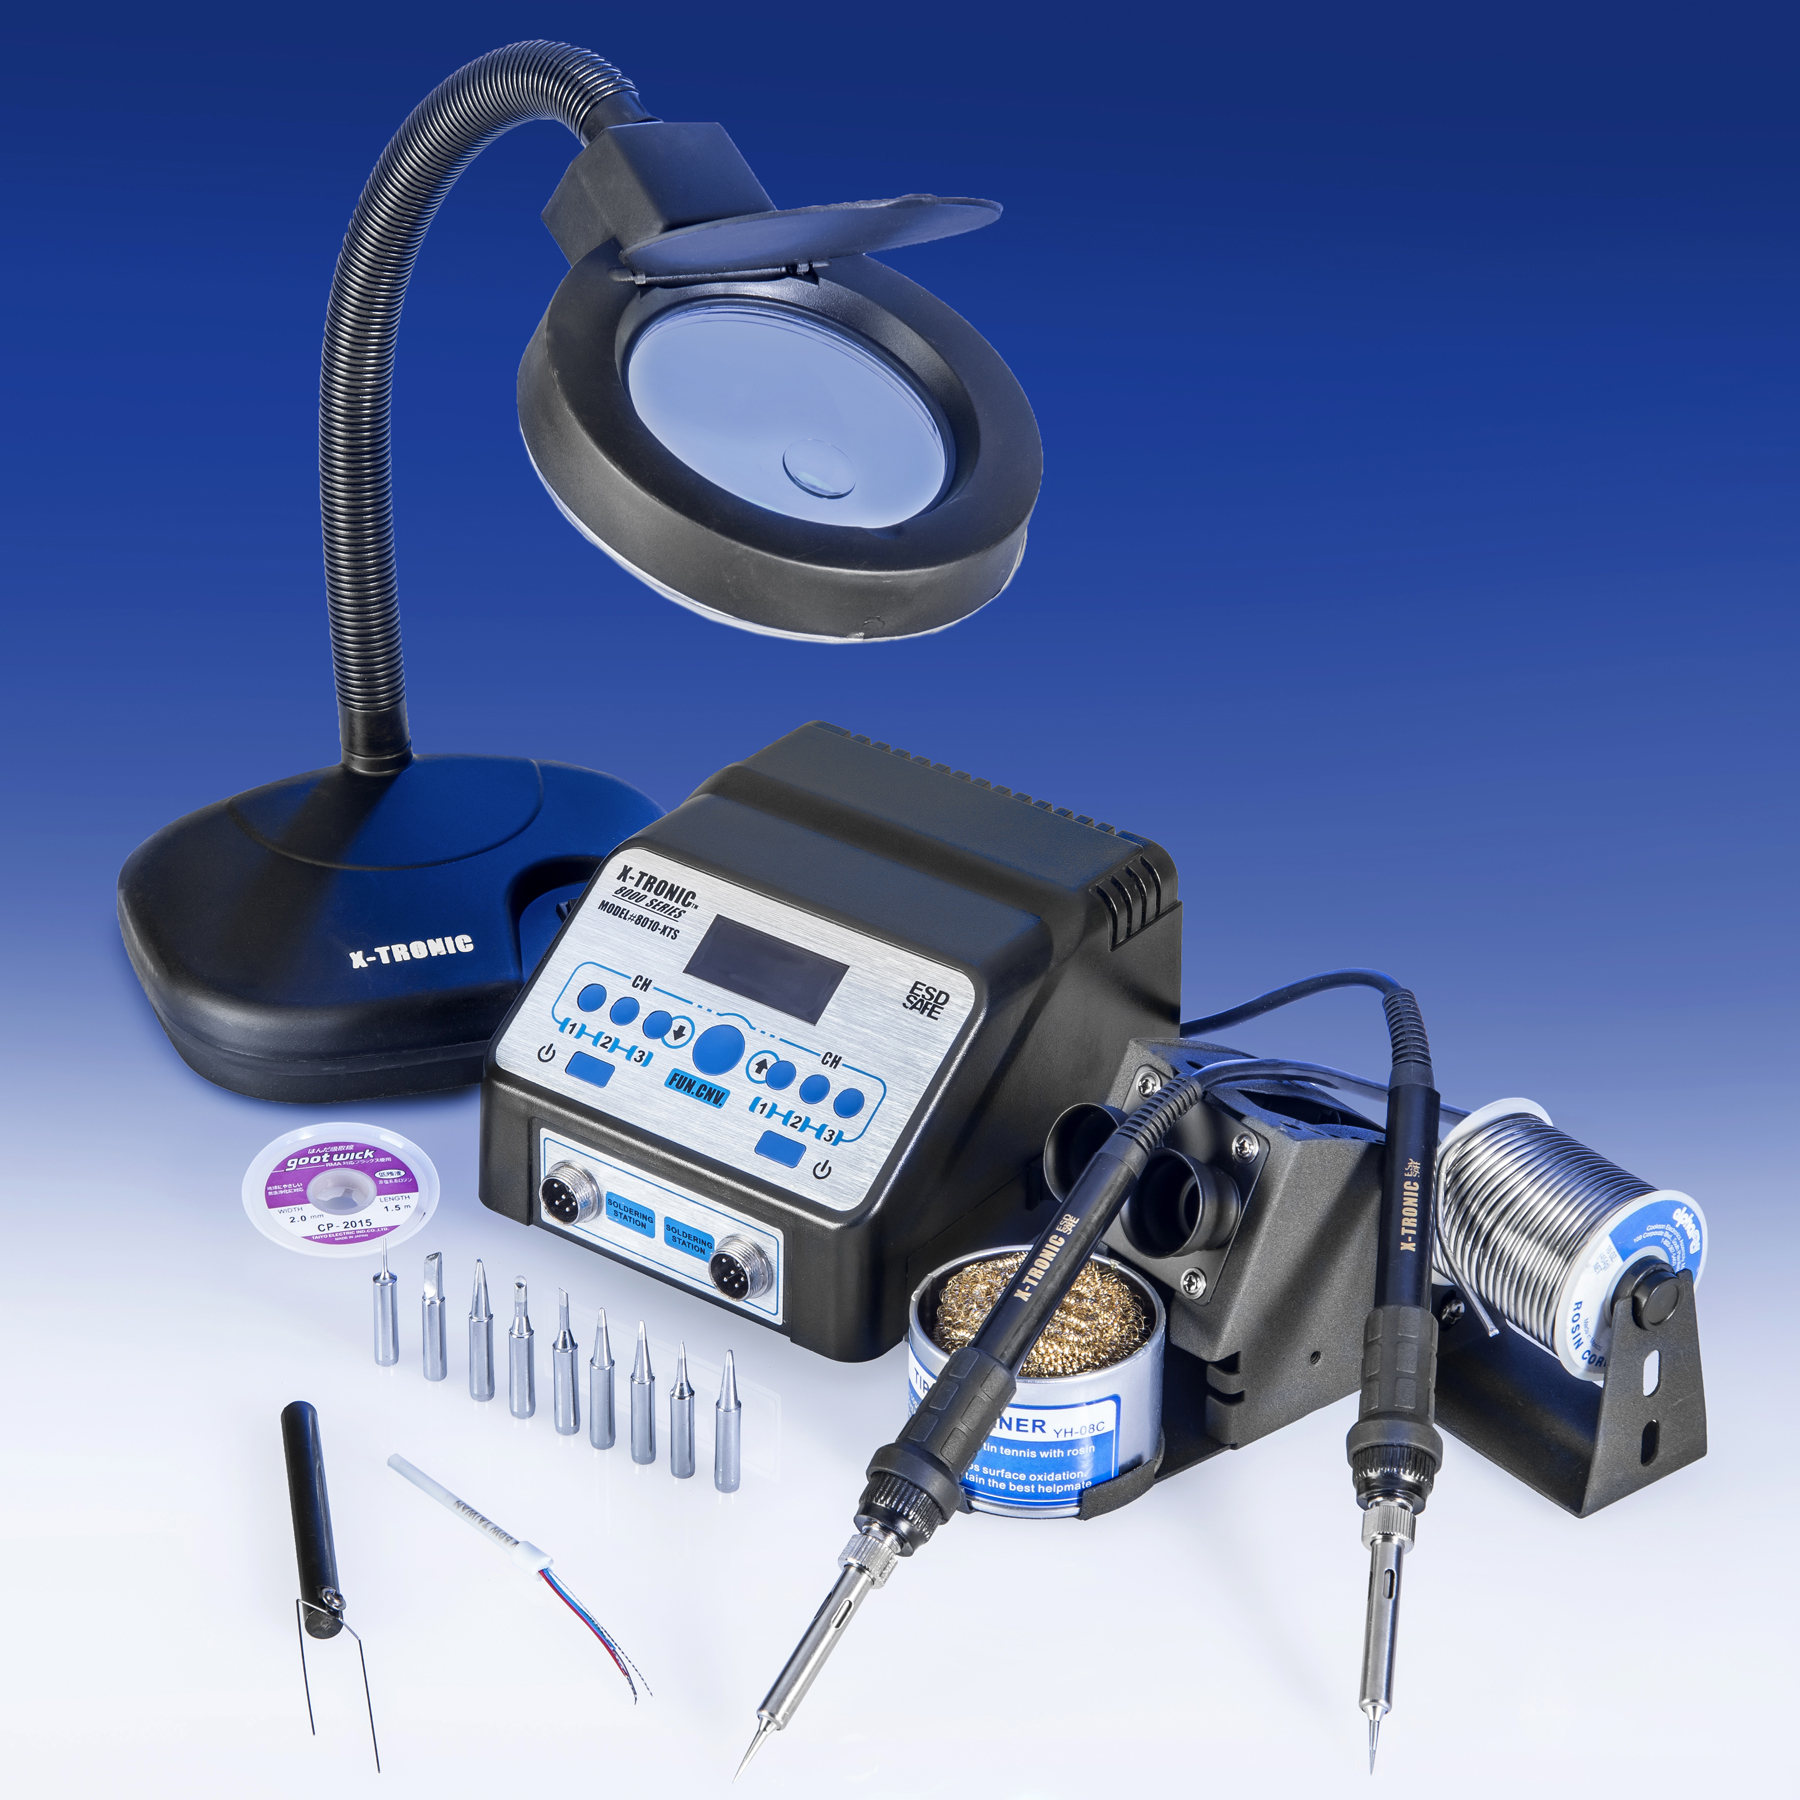 X-Tronic 8010-XTS DUAL Digital Soldering Station With Programmable 60 Watt Soldering Irons ESD Safe, C F, 10... by X-Tronic International, Inc.